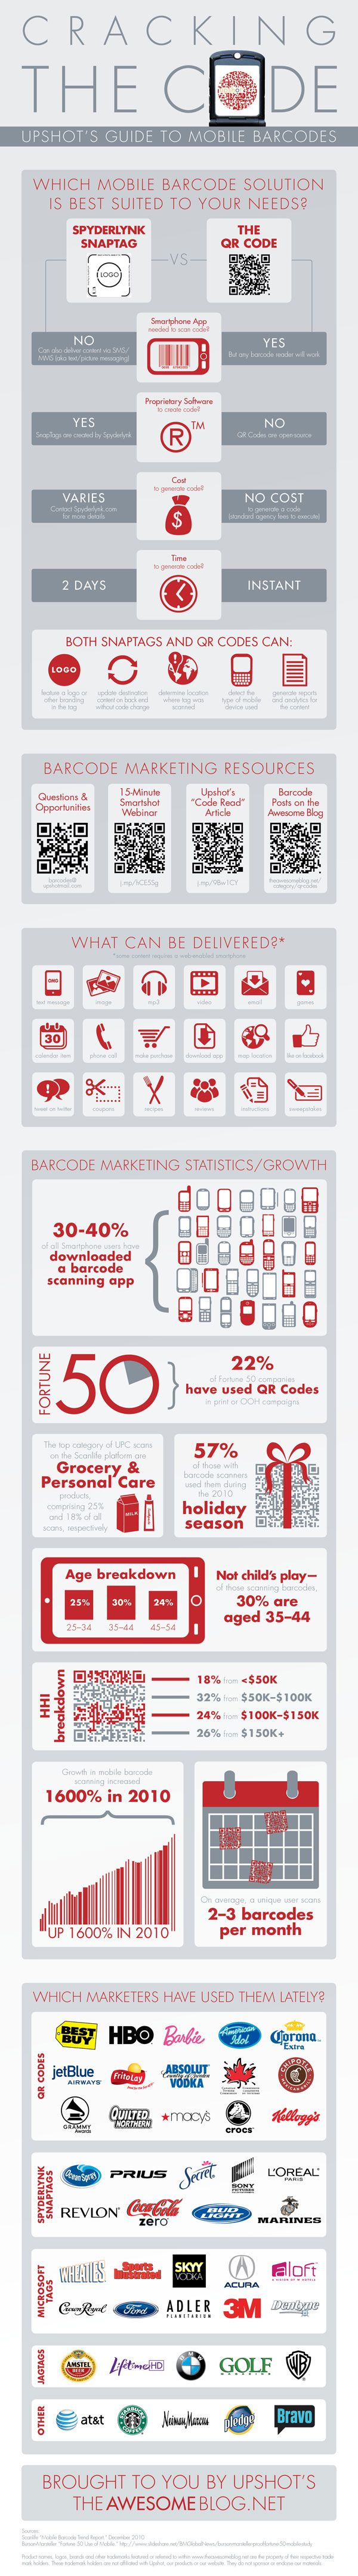 Barcode marketing is one of the latest and greatest trends to emerge in the marketing field.  Barcodes are generated and scanned from mobile devices i